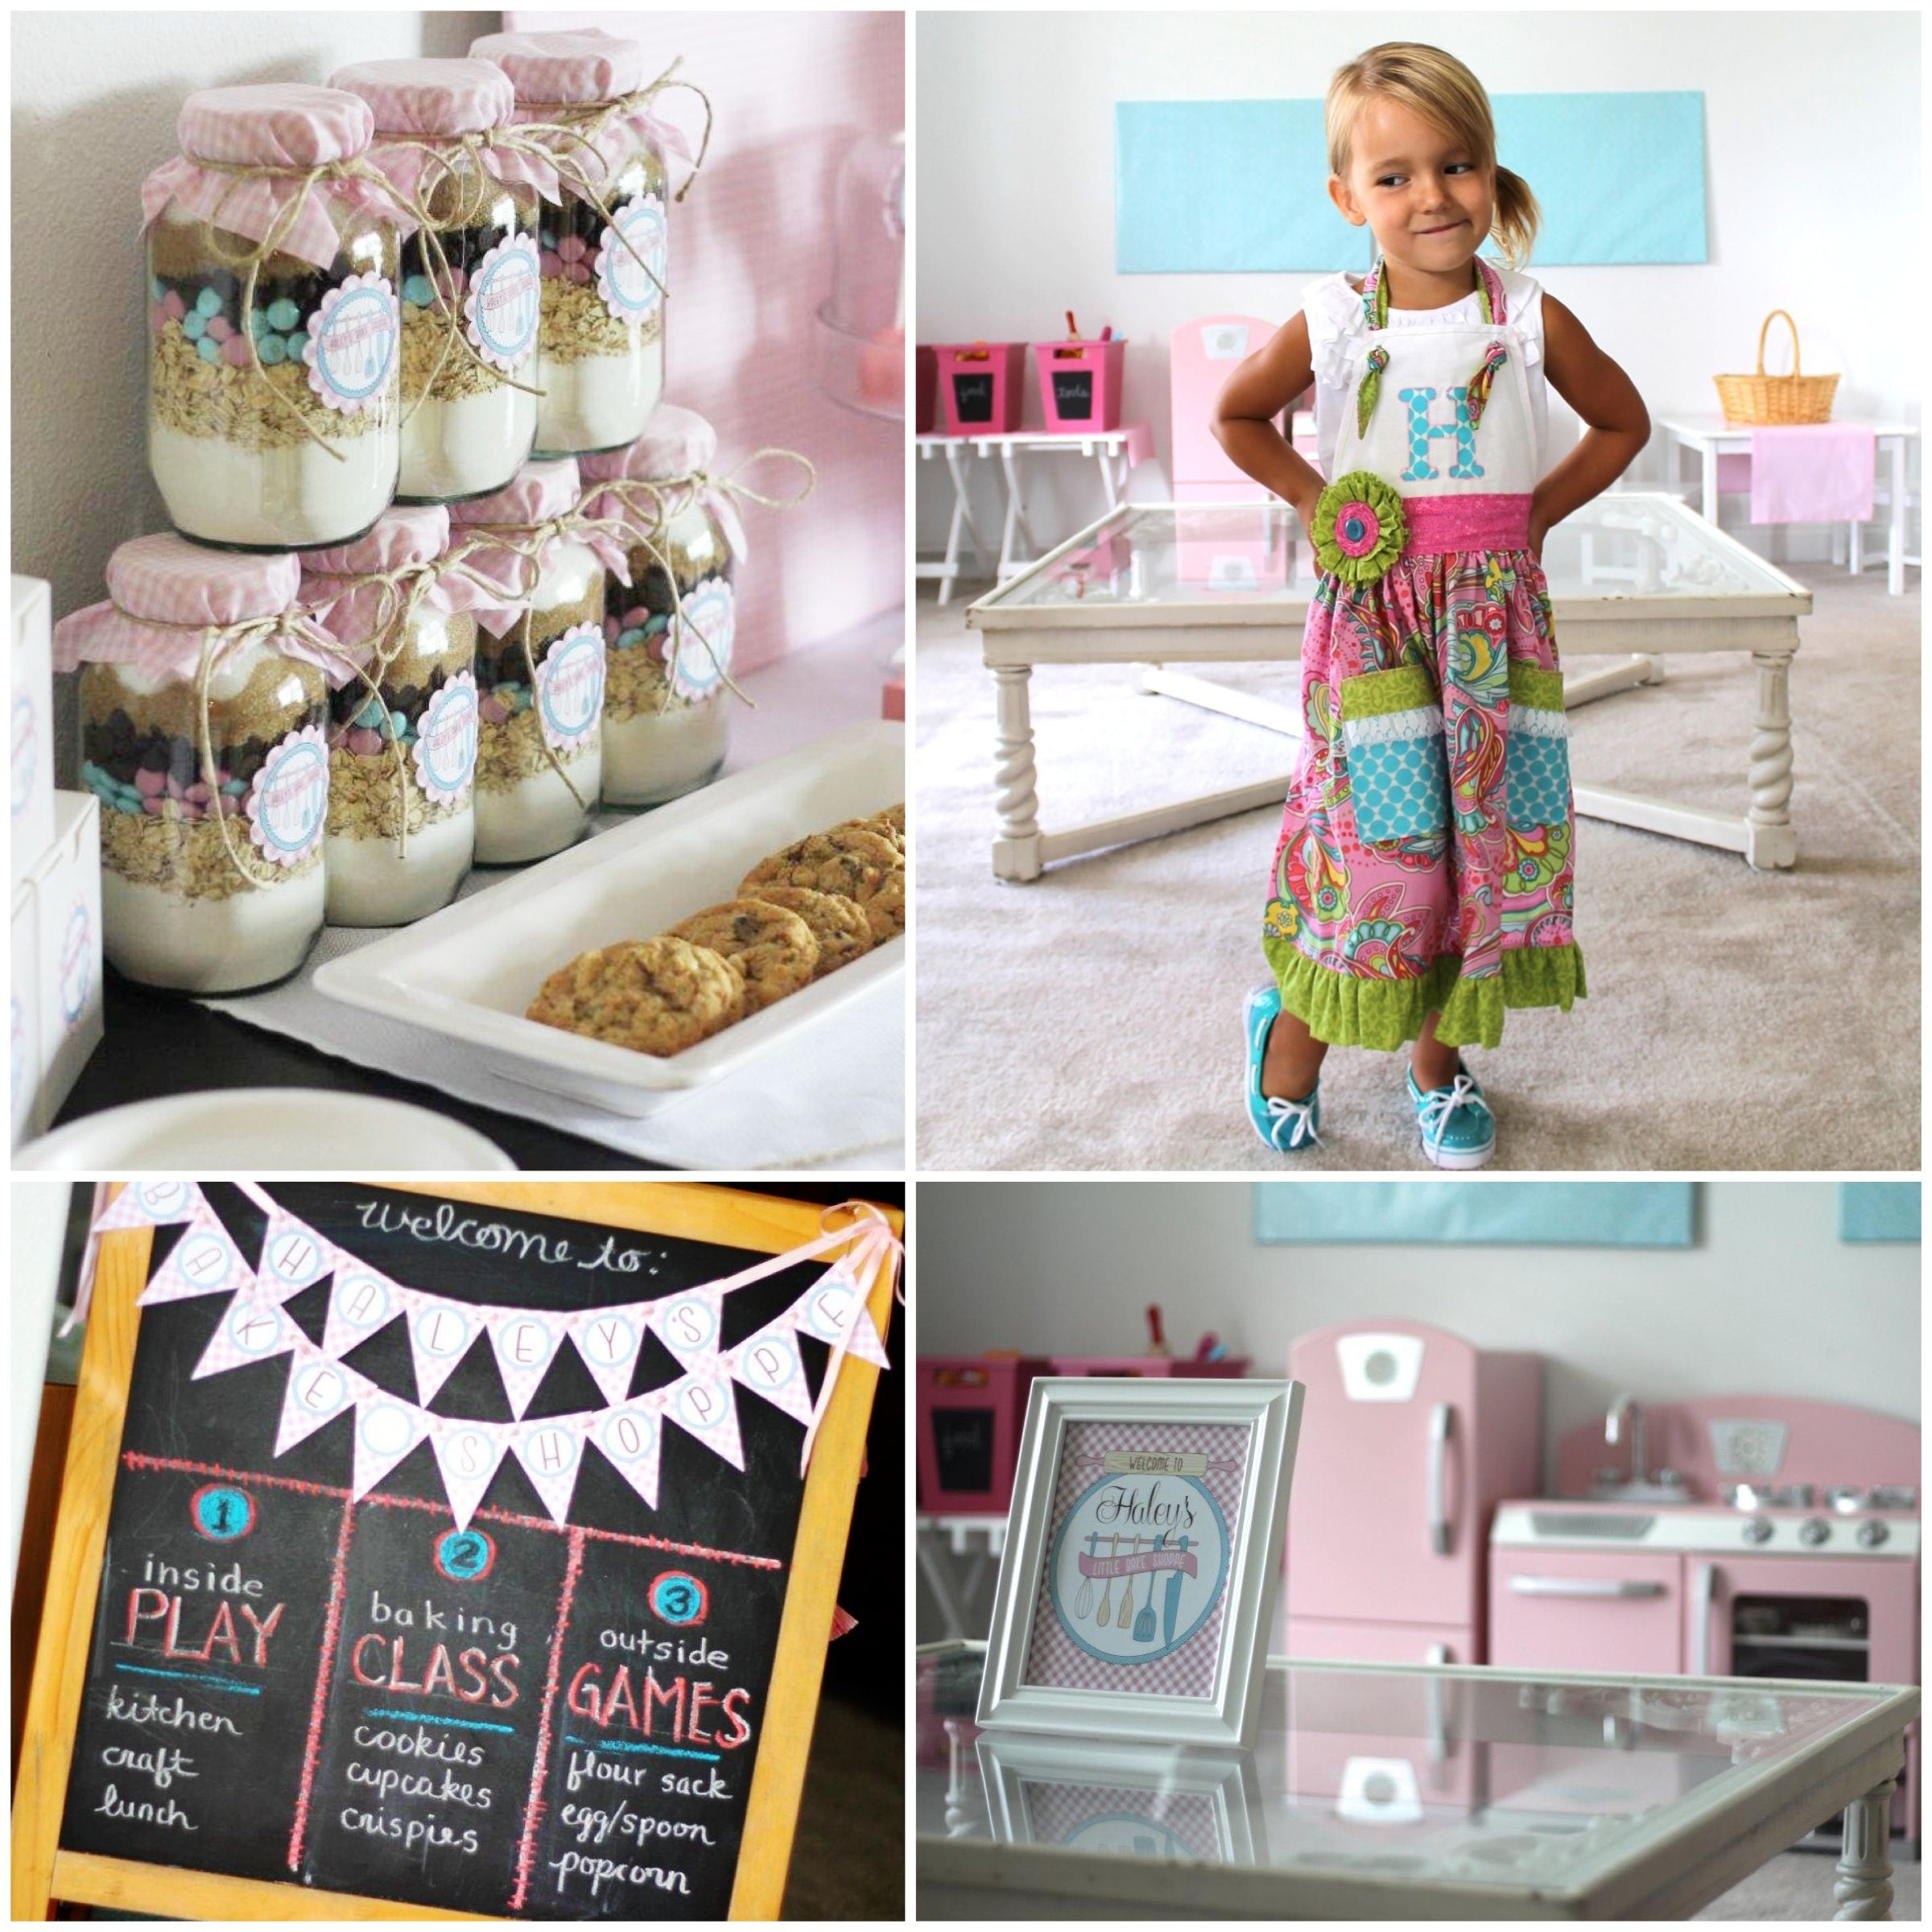 Best Party planner around...can create and make anything you can imagine!